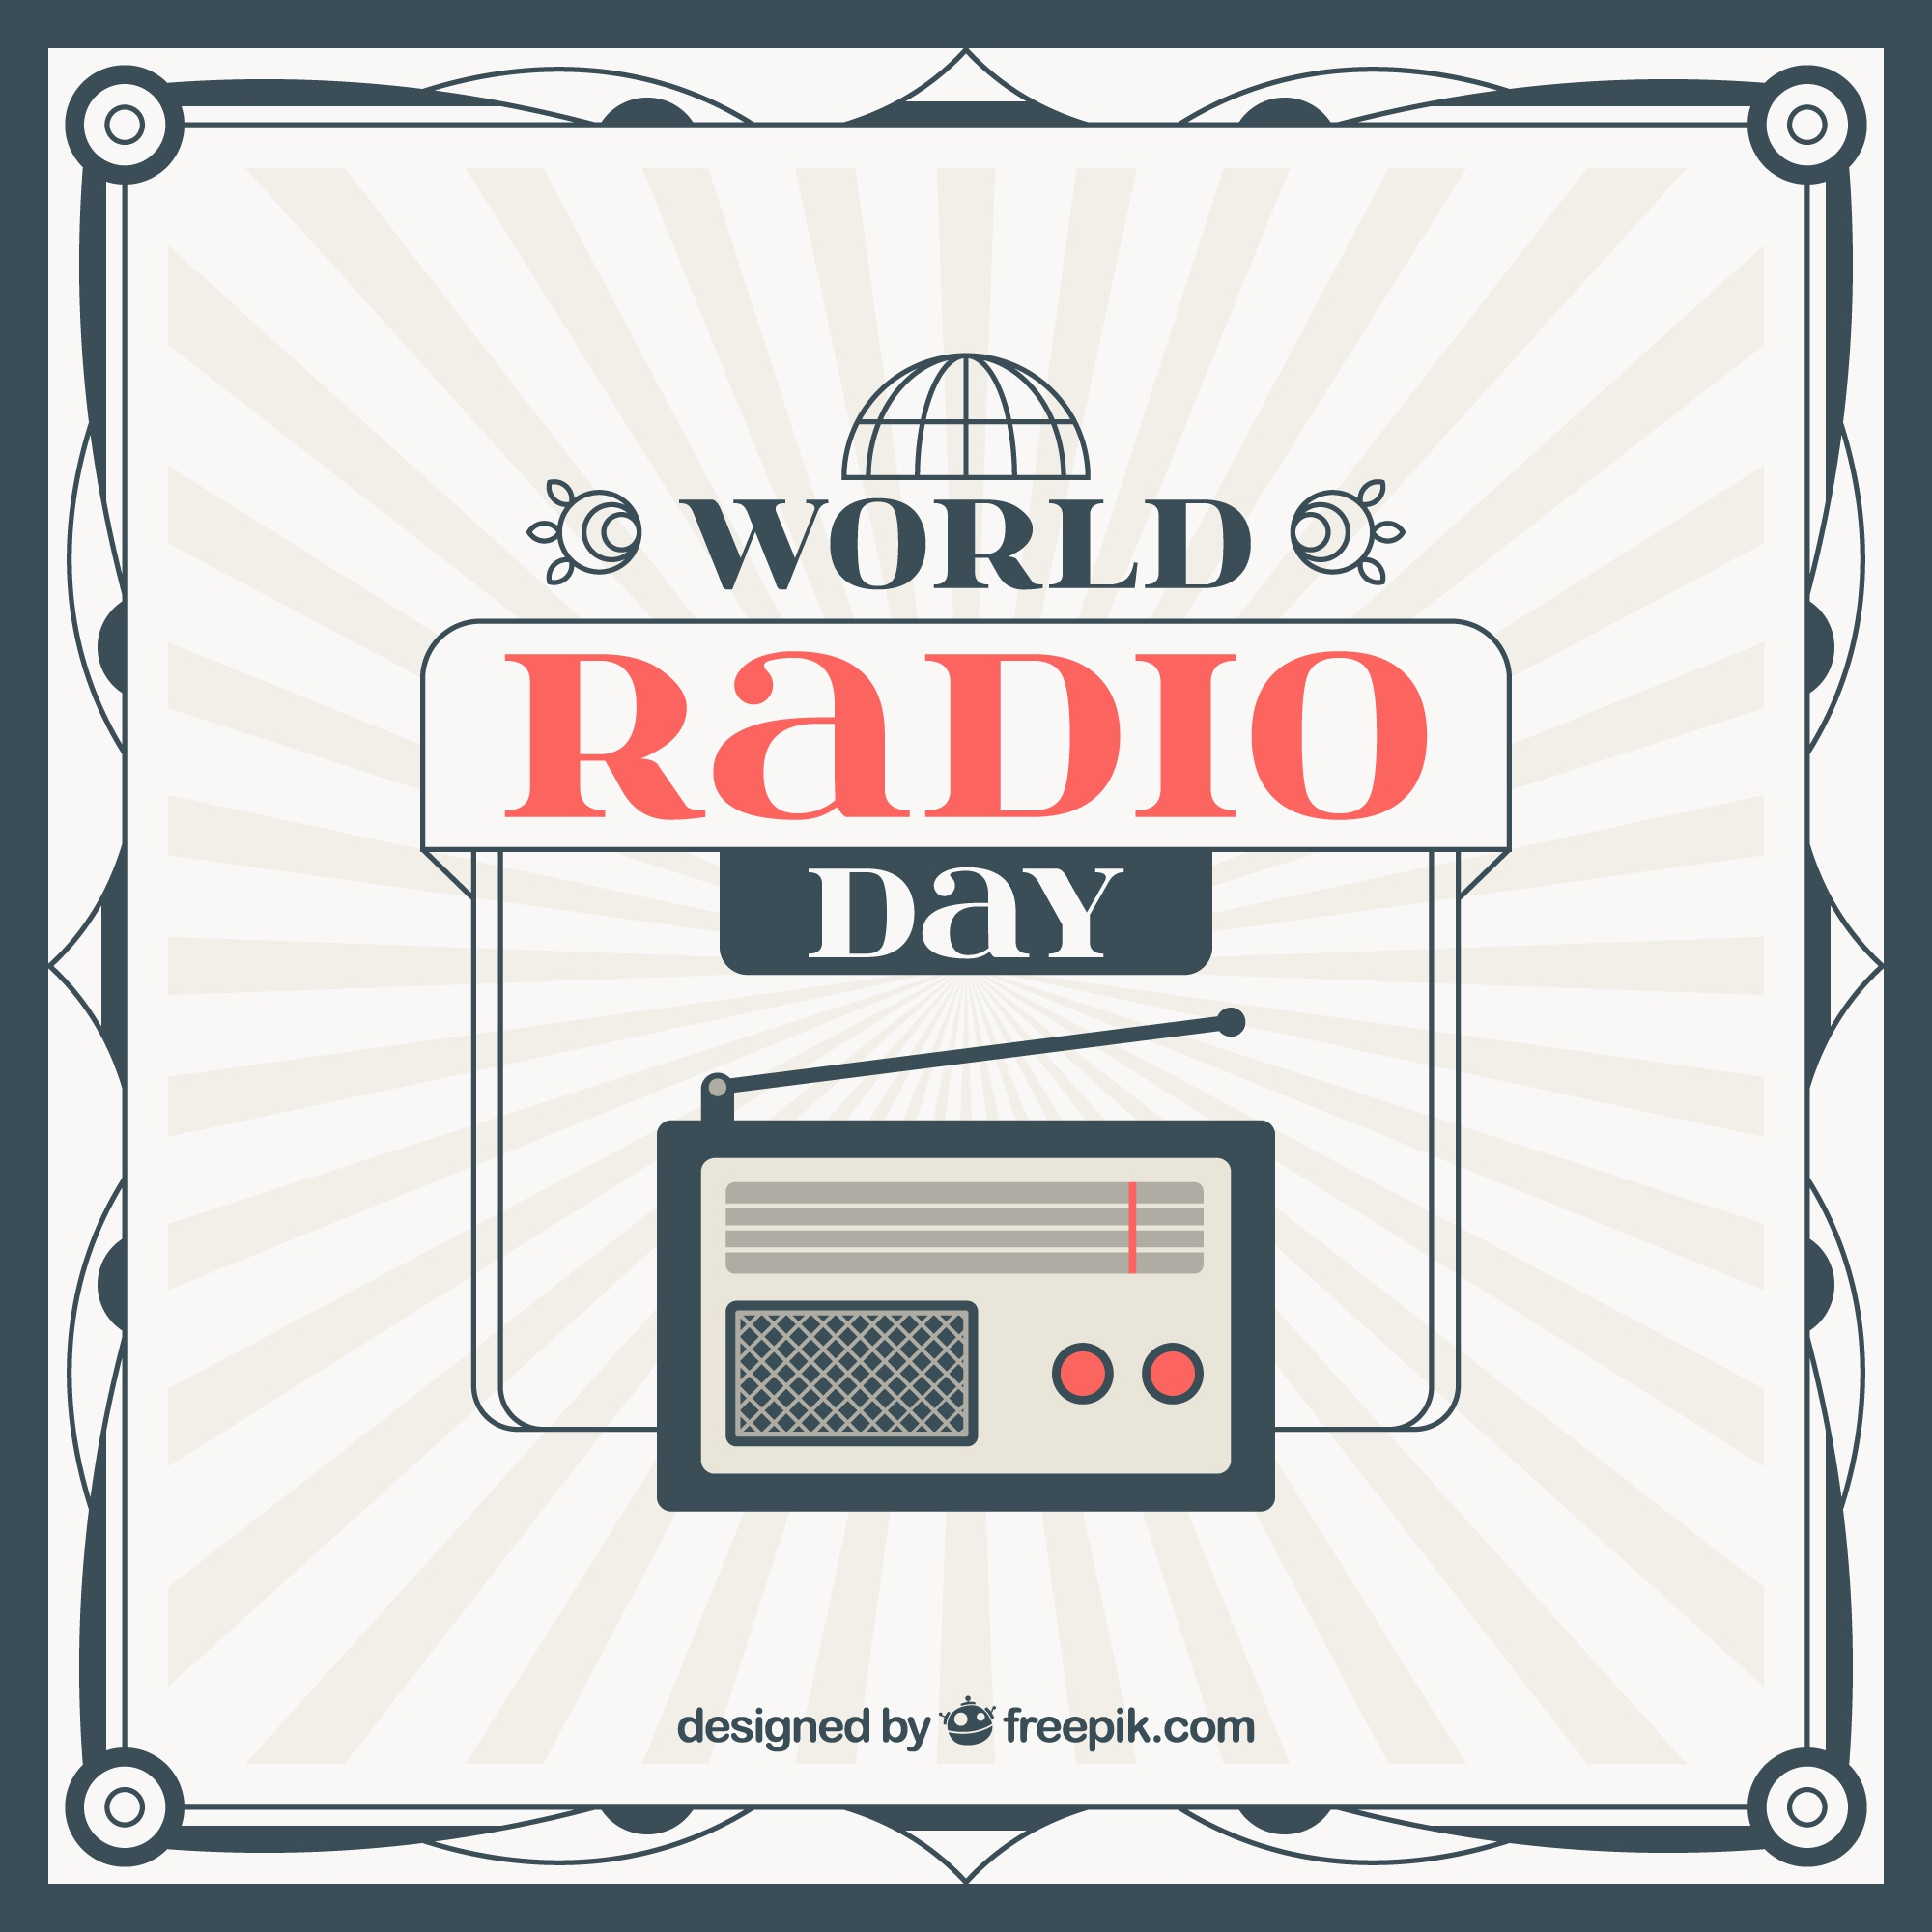 Vintage radio world day background in flat design